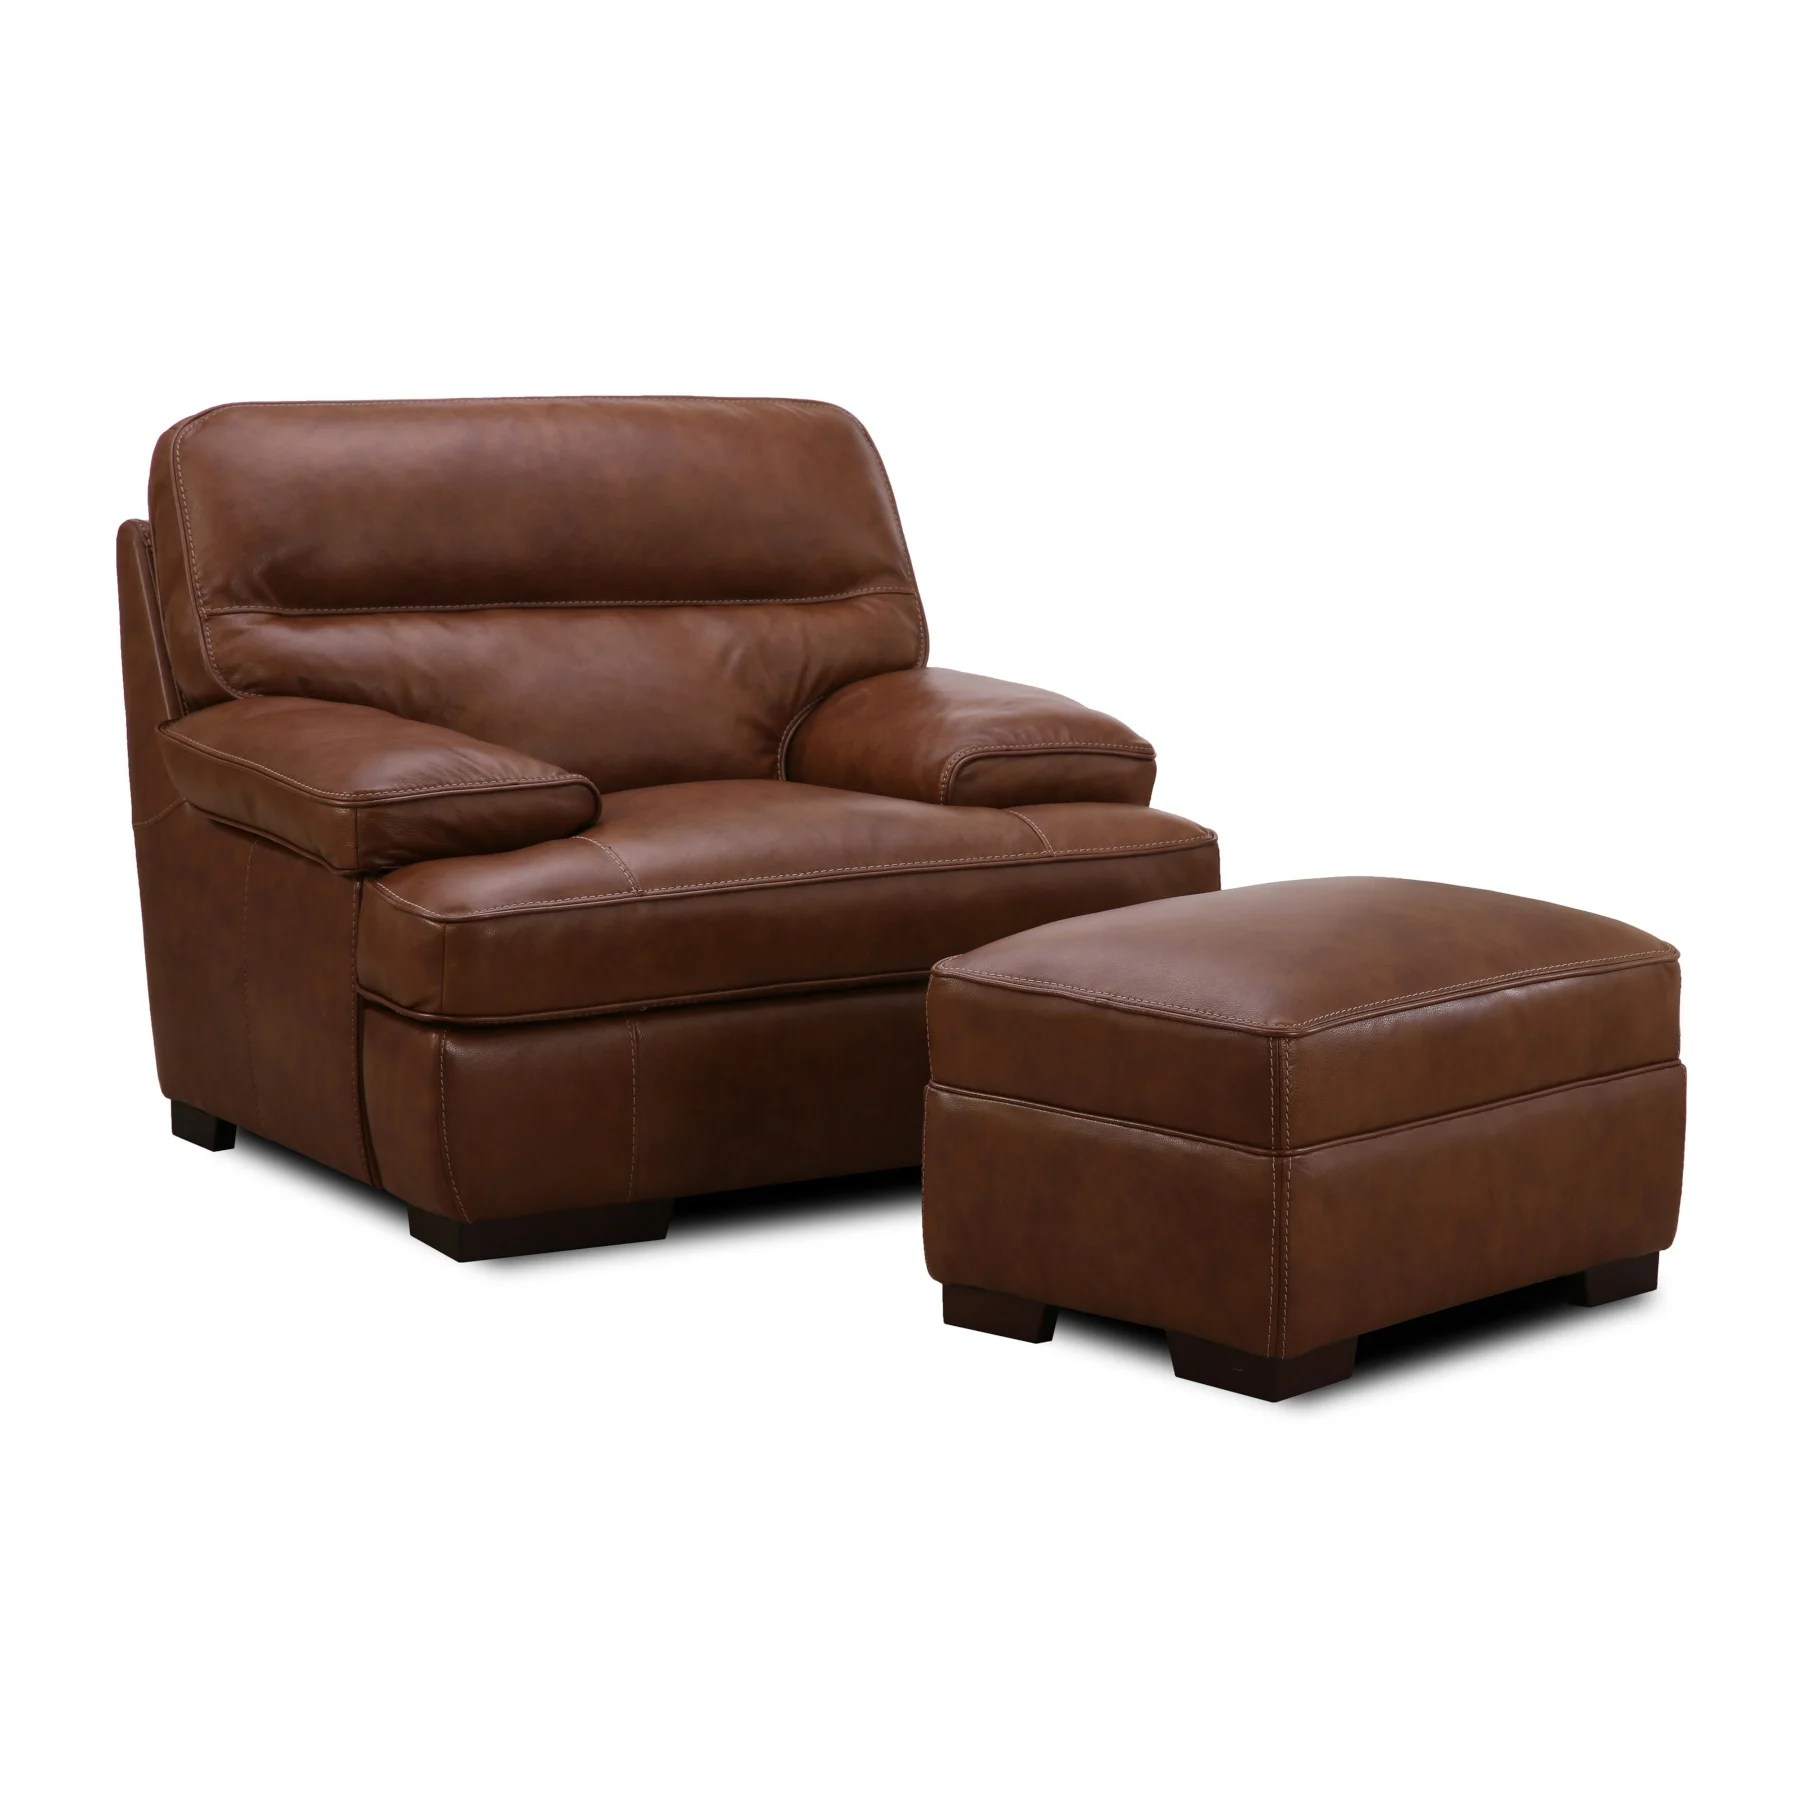 swivel cuddle chair york small chairs for spaces albany smoke gray padded microfiber weekends only simon li colin top grain leather